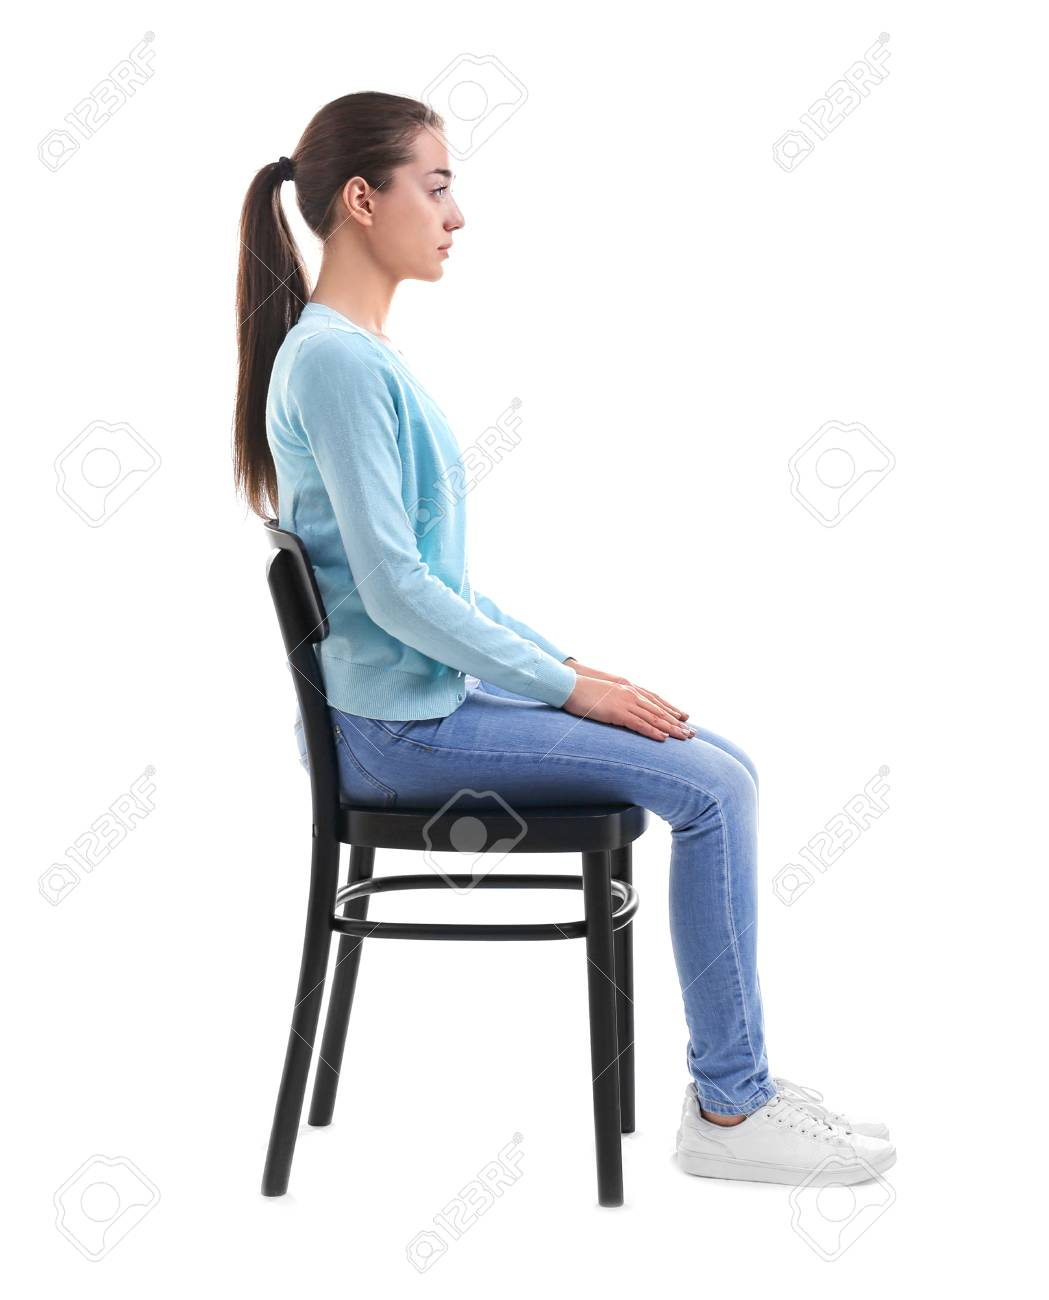 Posture Concept Young Woman Sitting On Chair Against White 1049x1300